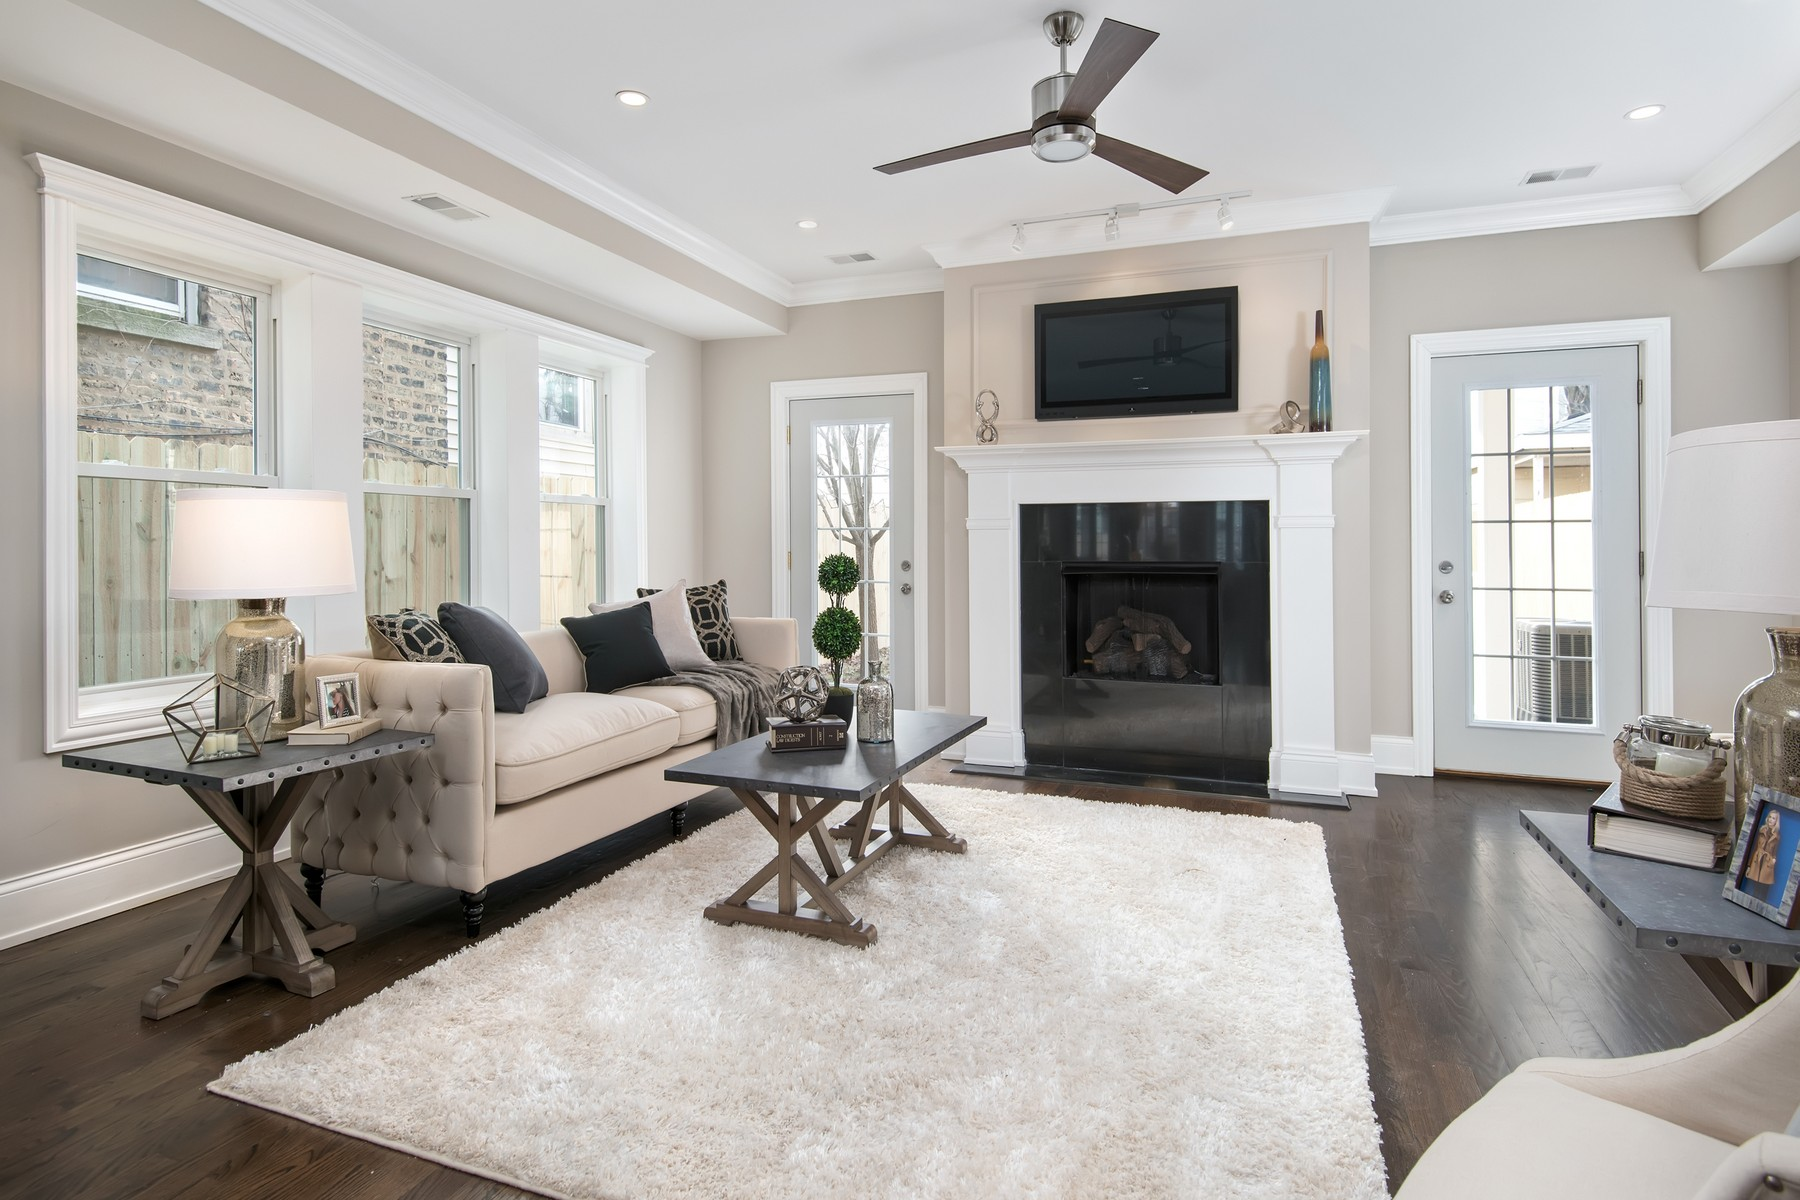 Property For Sale at Stunning Fully Redesigned Home